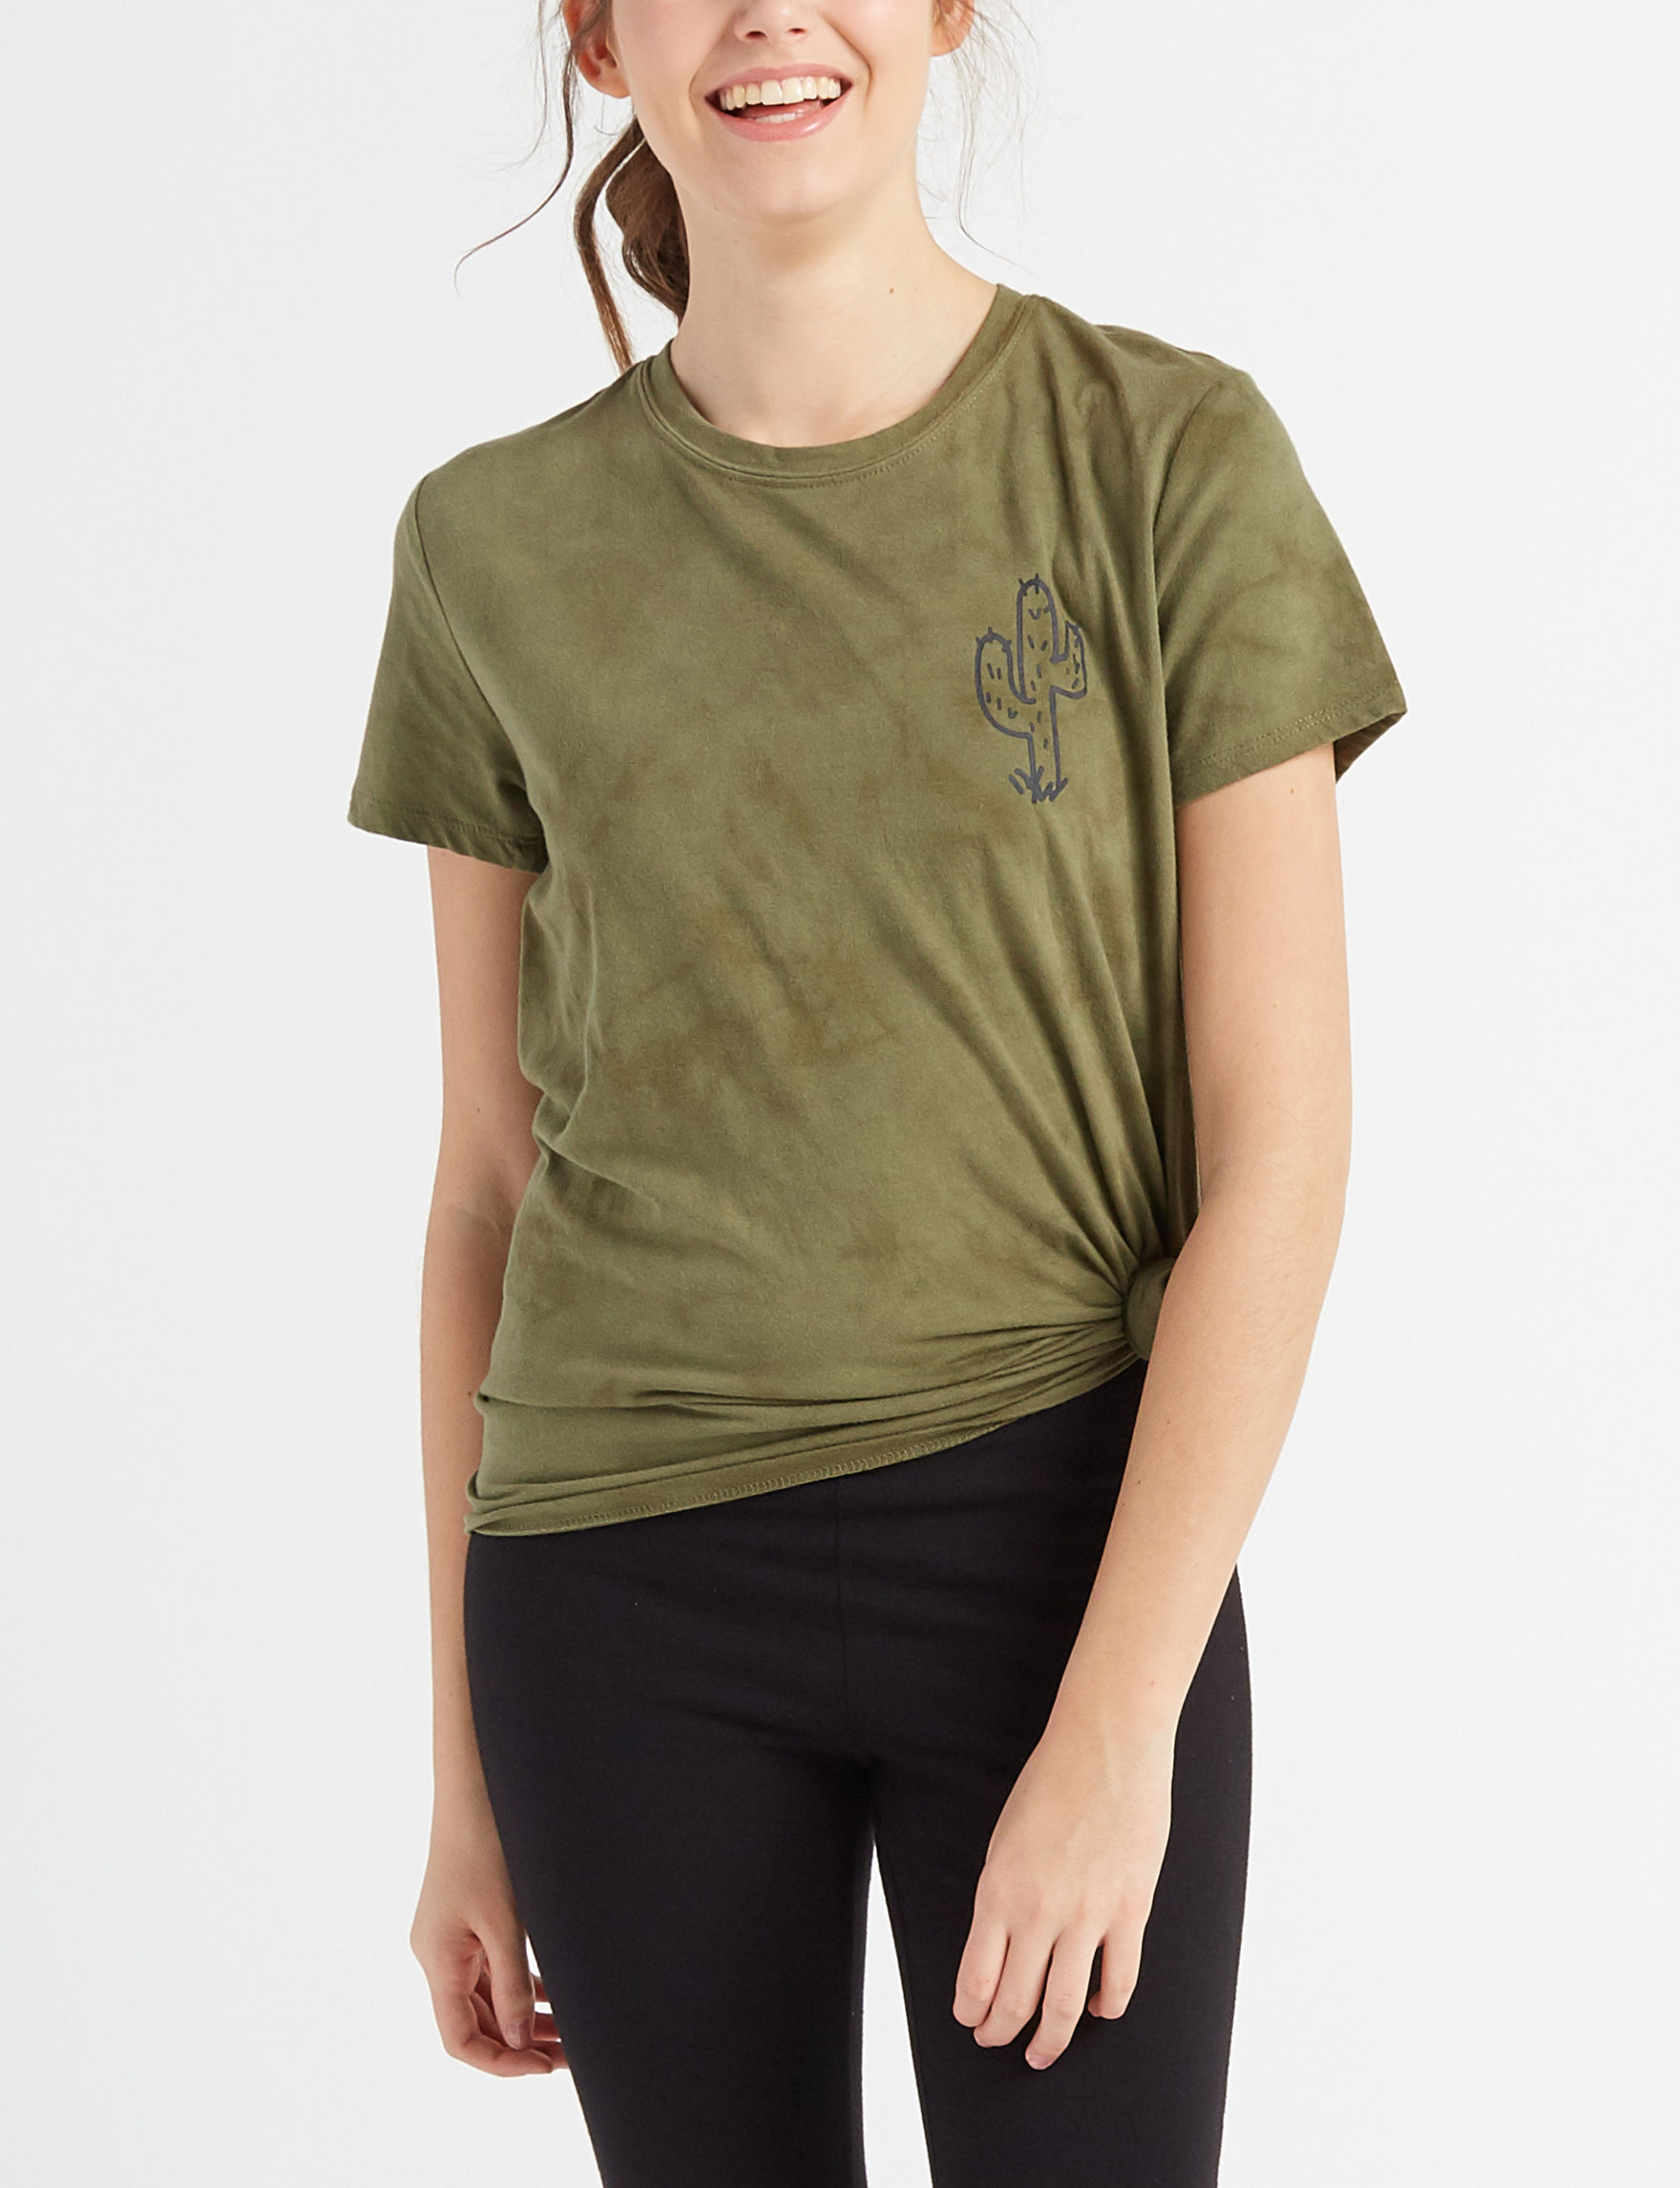 Cold Crush Olive Tees & Tanks